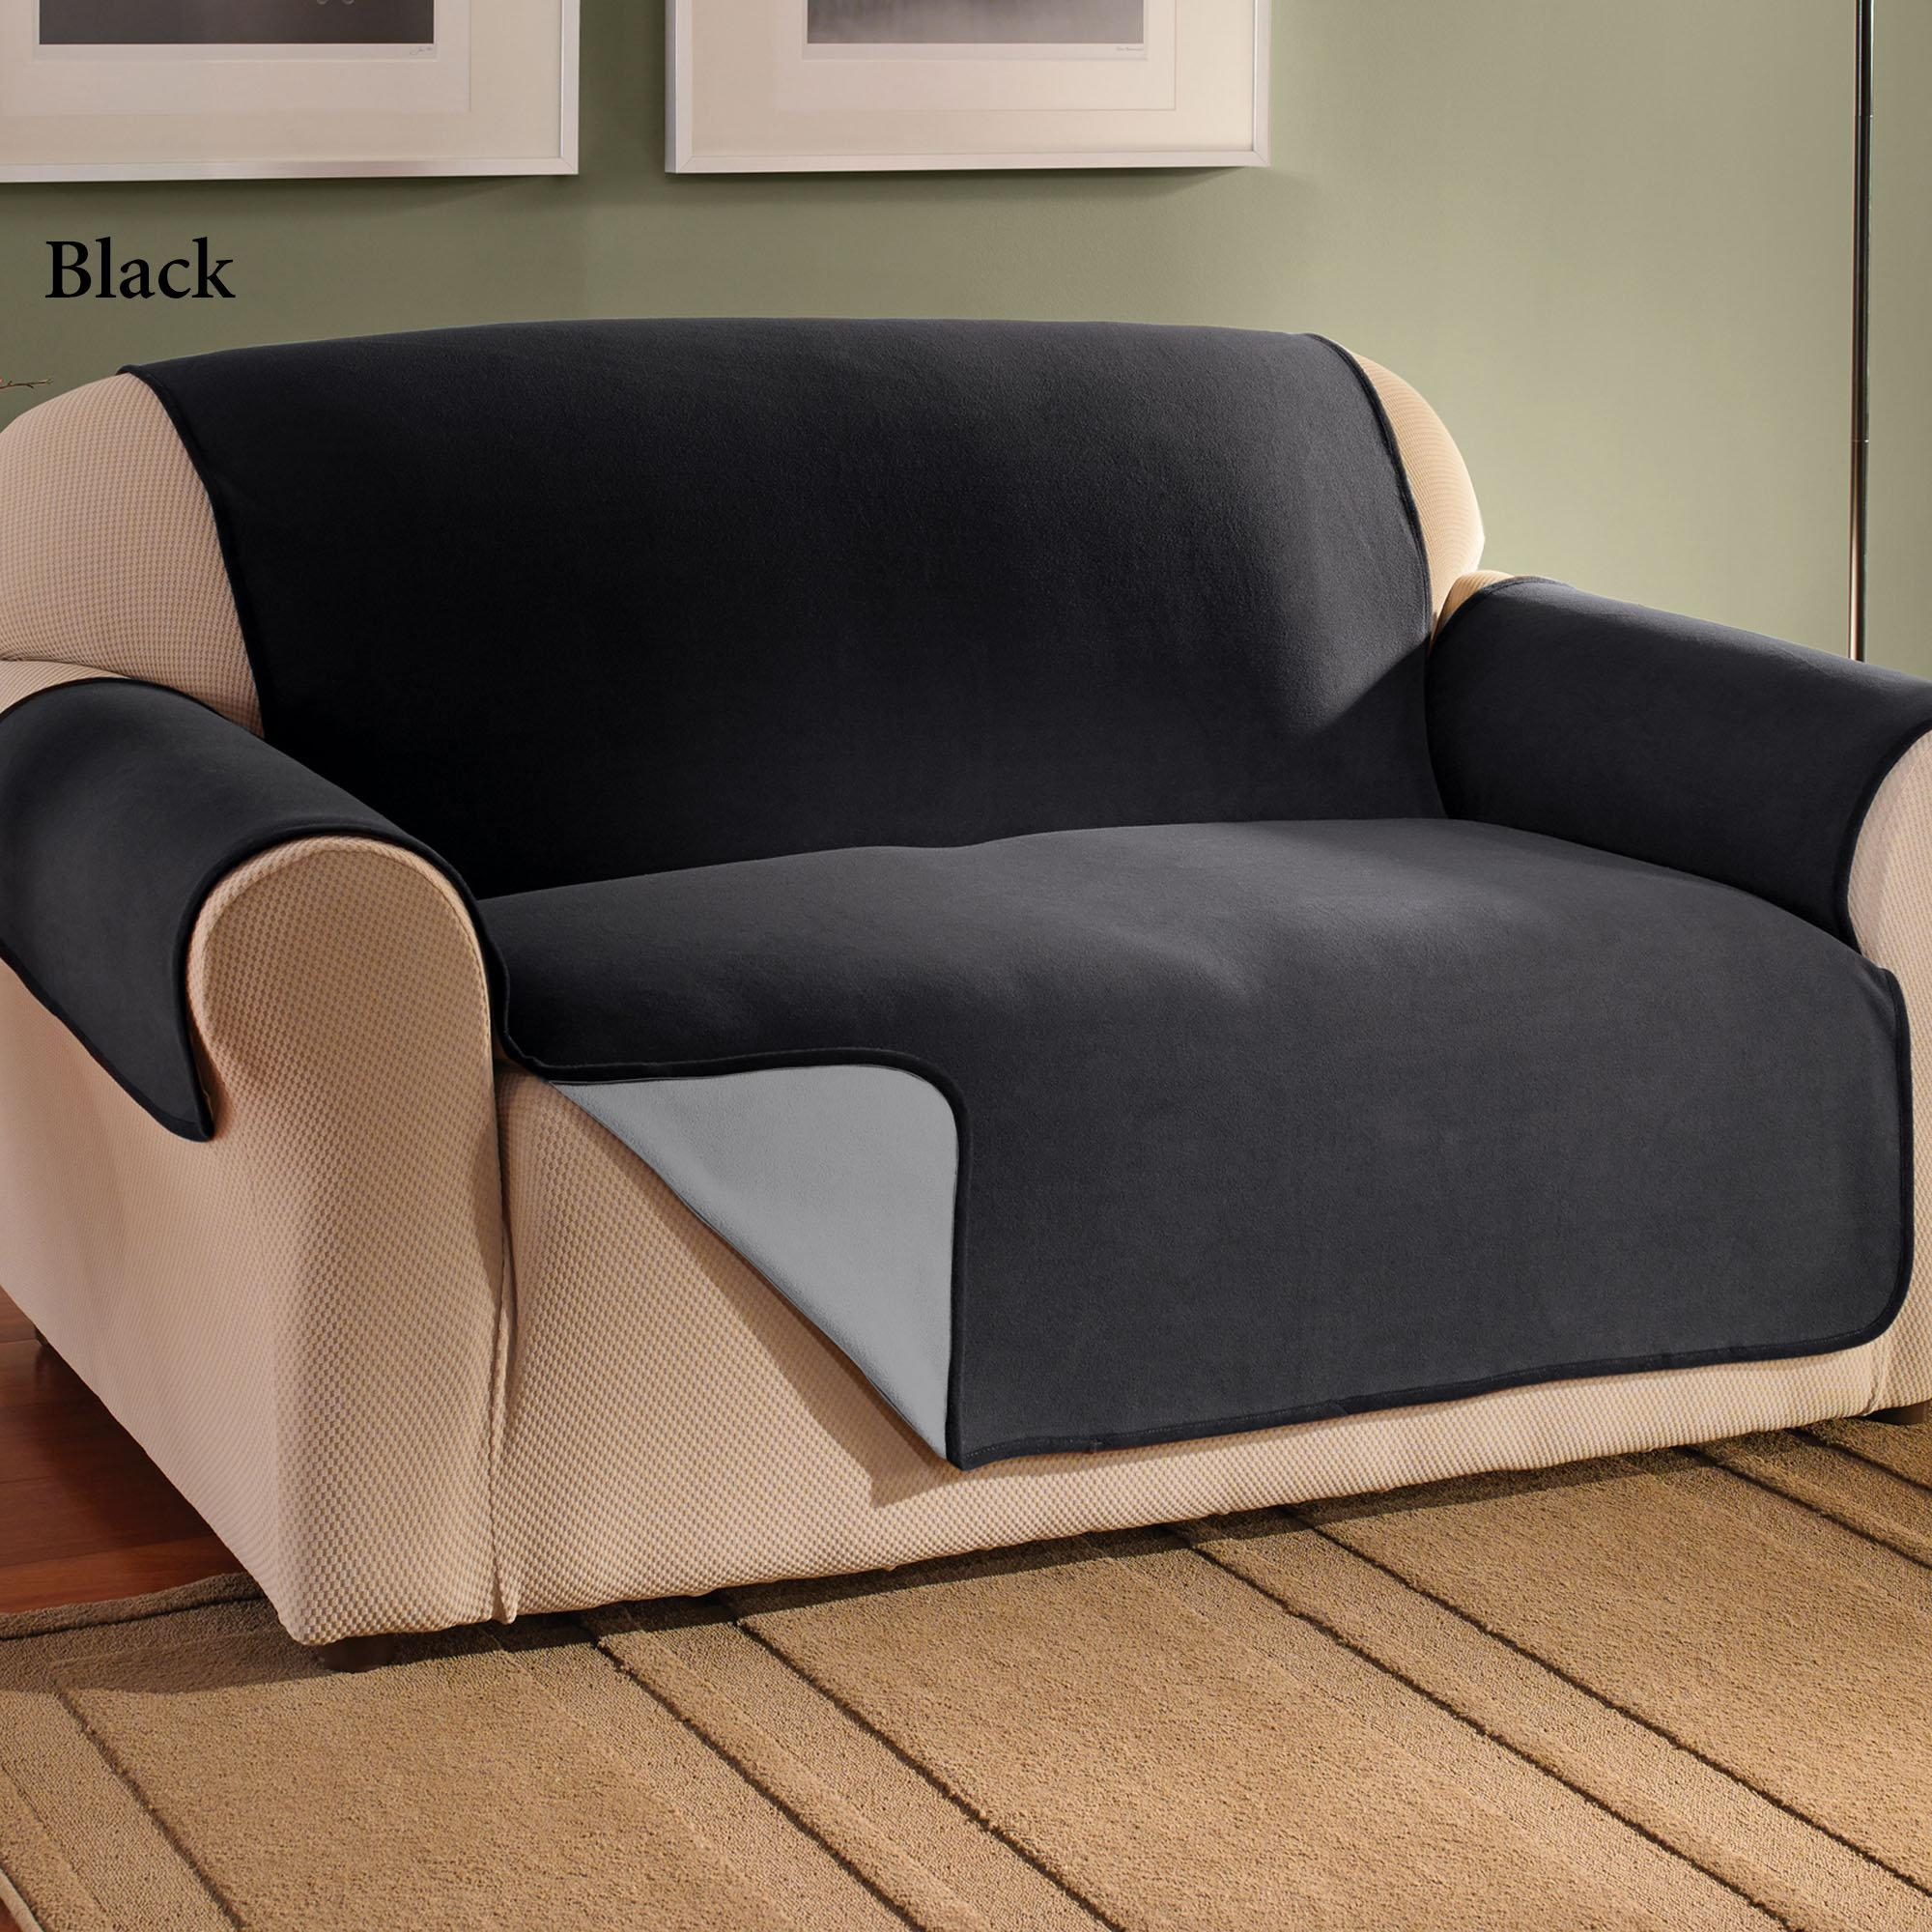 Furniture: Comfortable Interior Furniture Design With Walmart Sofa With Black Sofa Slipcovers (Image 9 of 20)